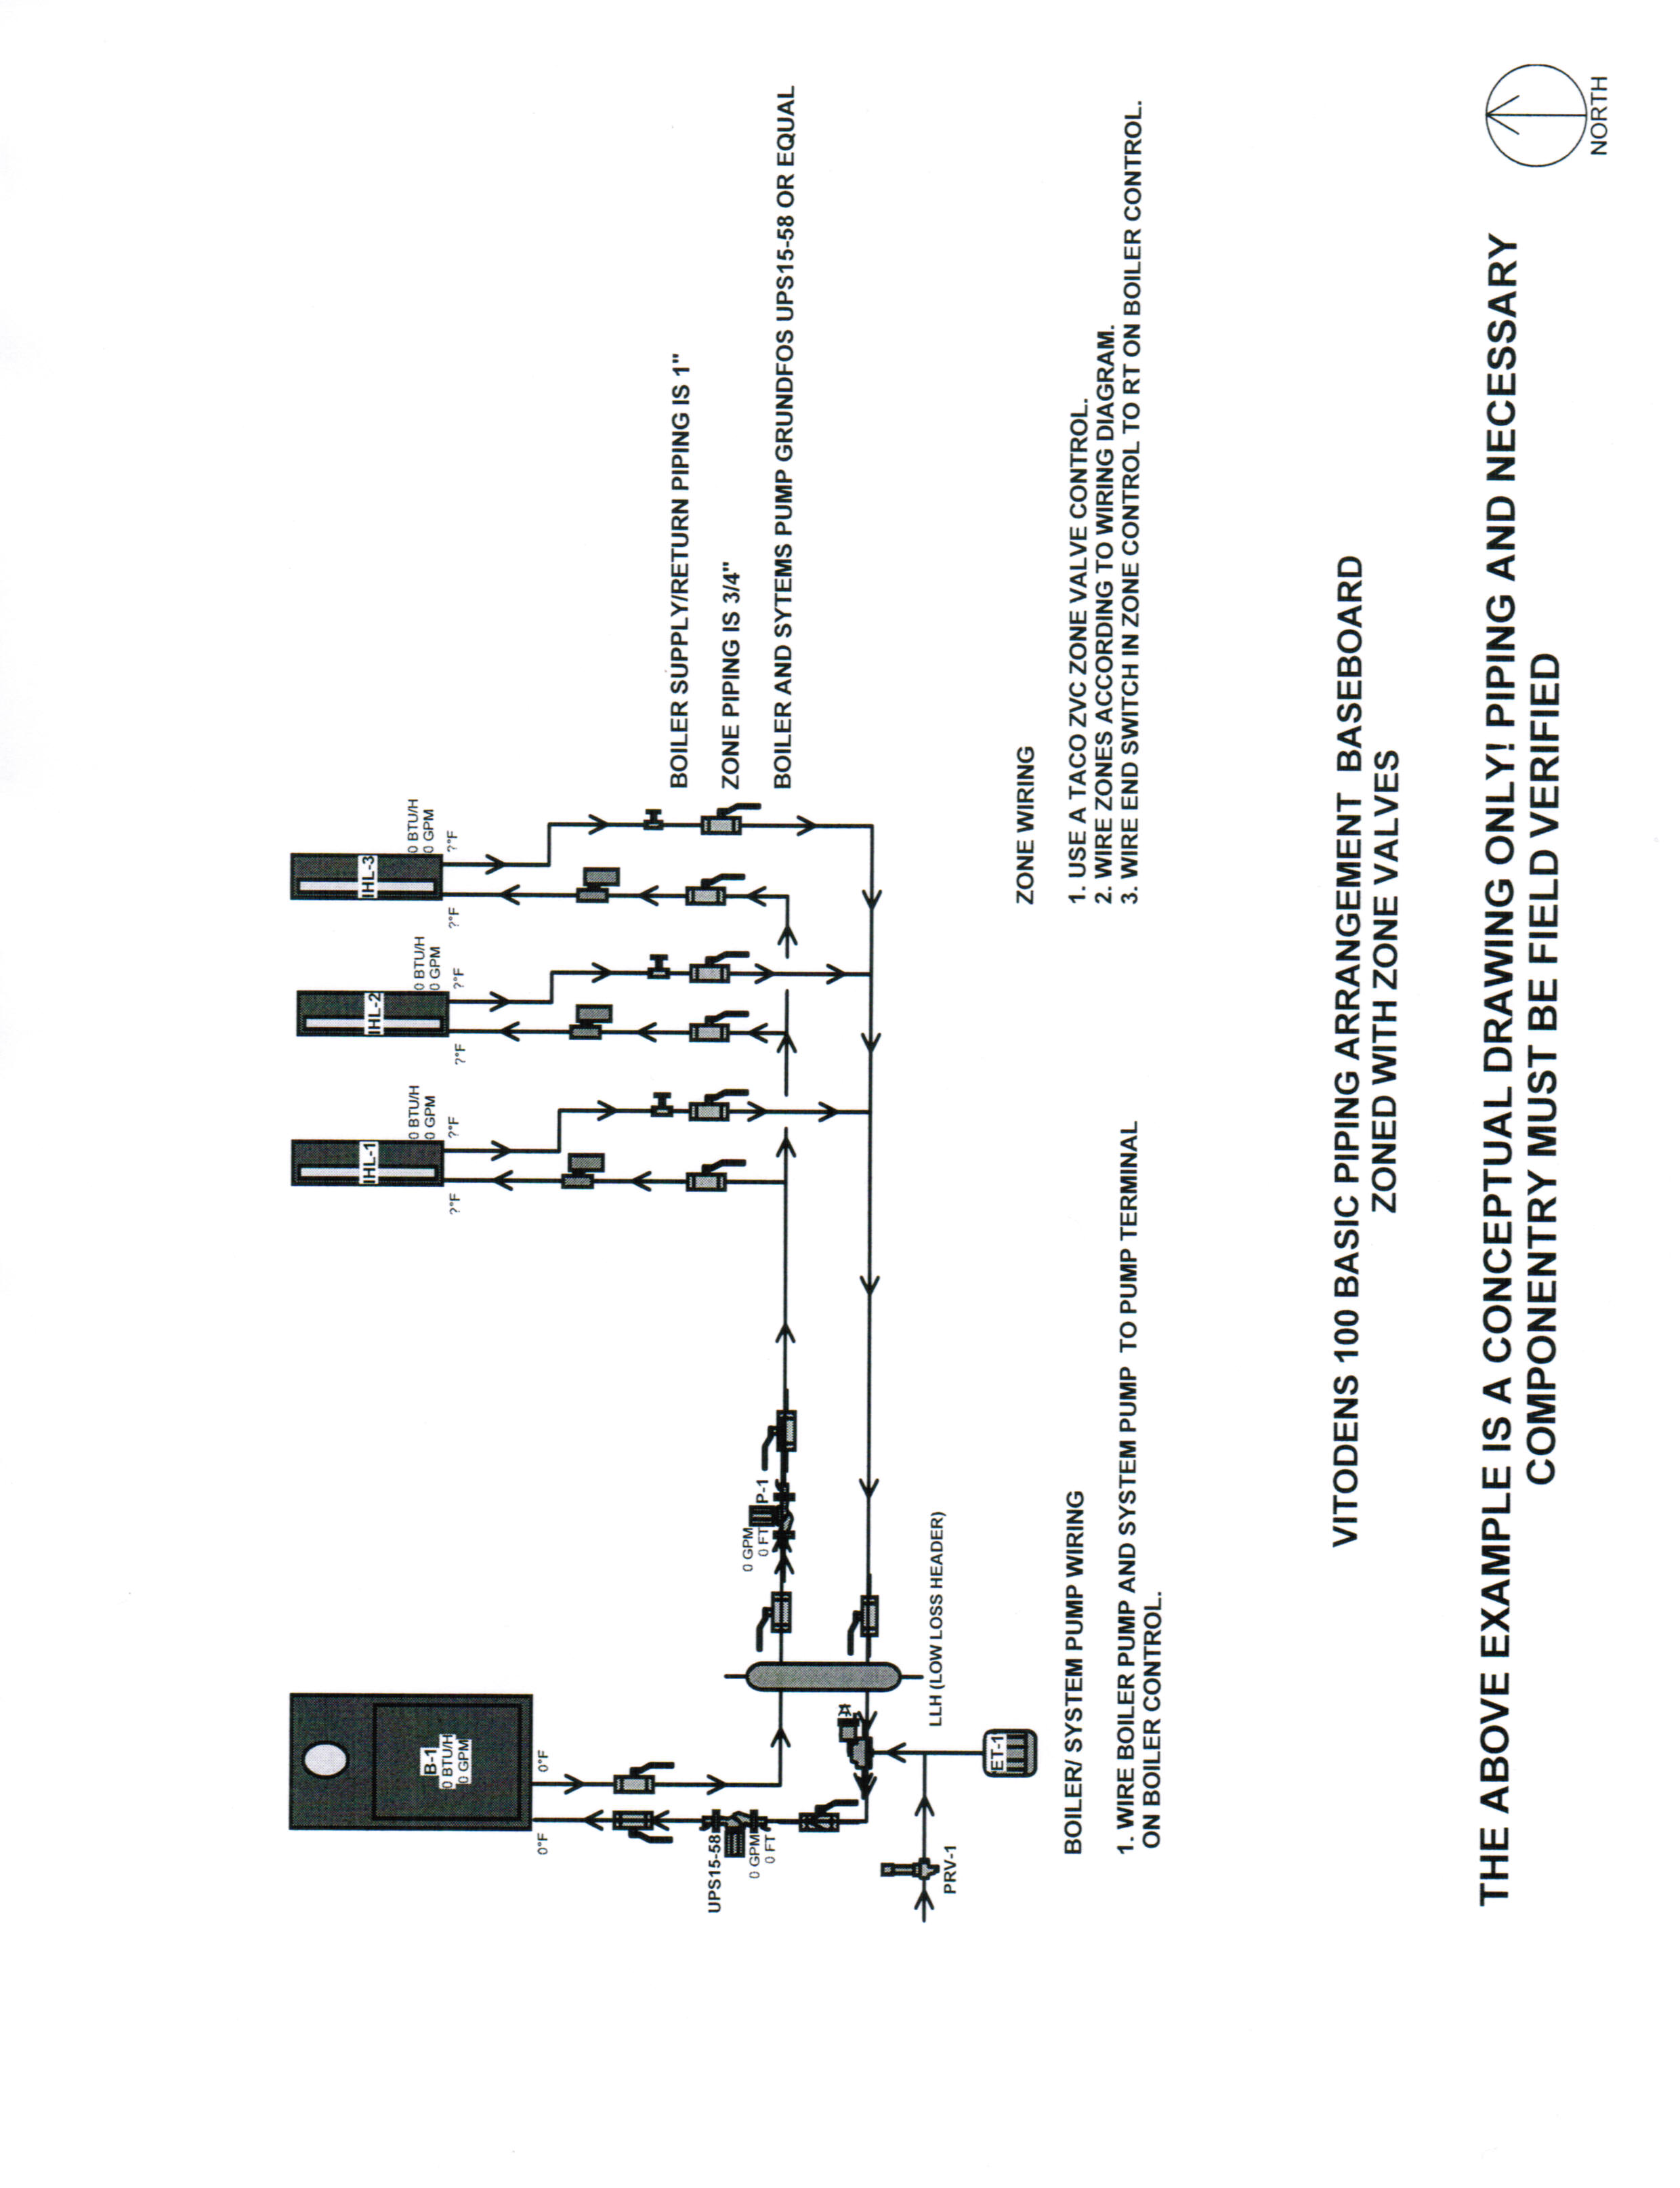 Cleaver Brooks Wiring Diagram Trusted Diagrams Miura Boiler Ibc Services U2022 Fire Tube Boilers